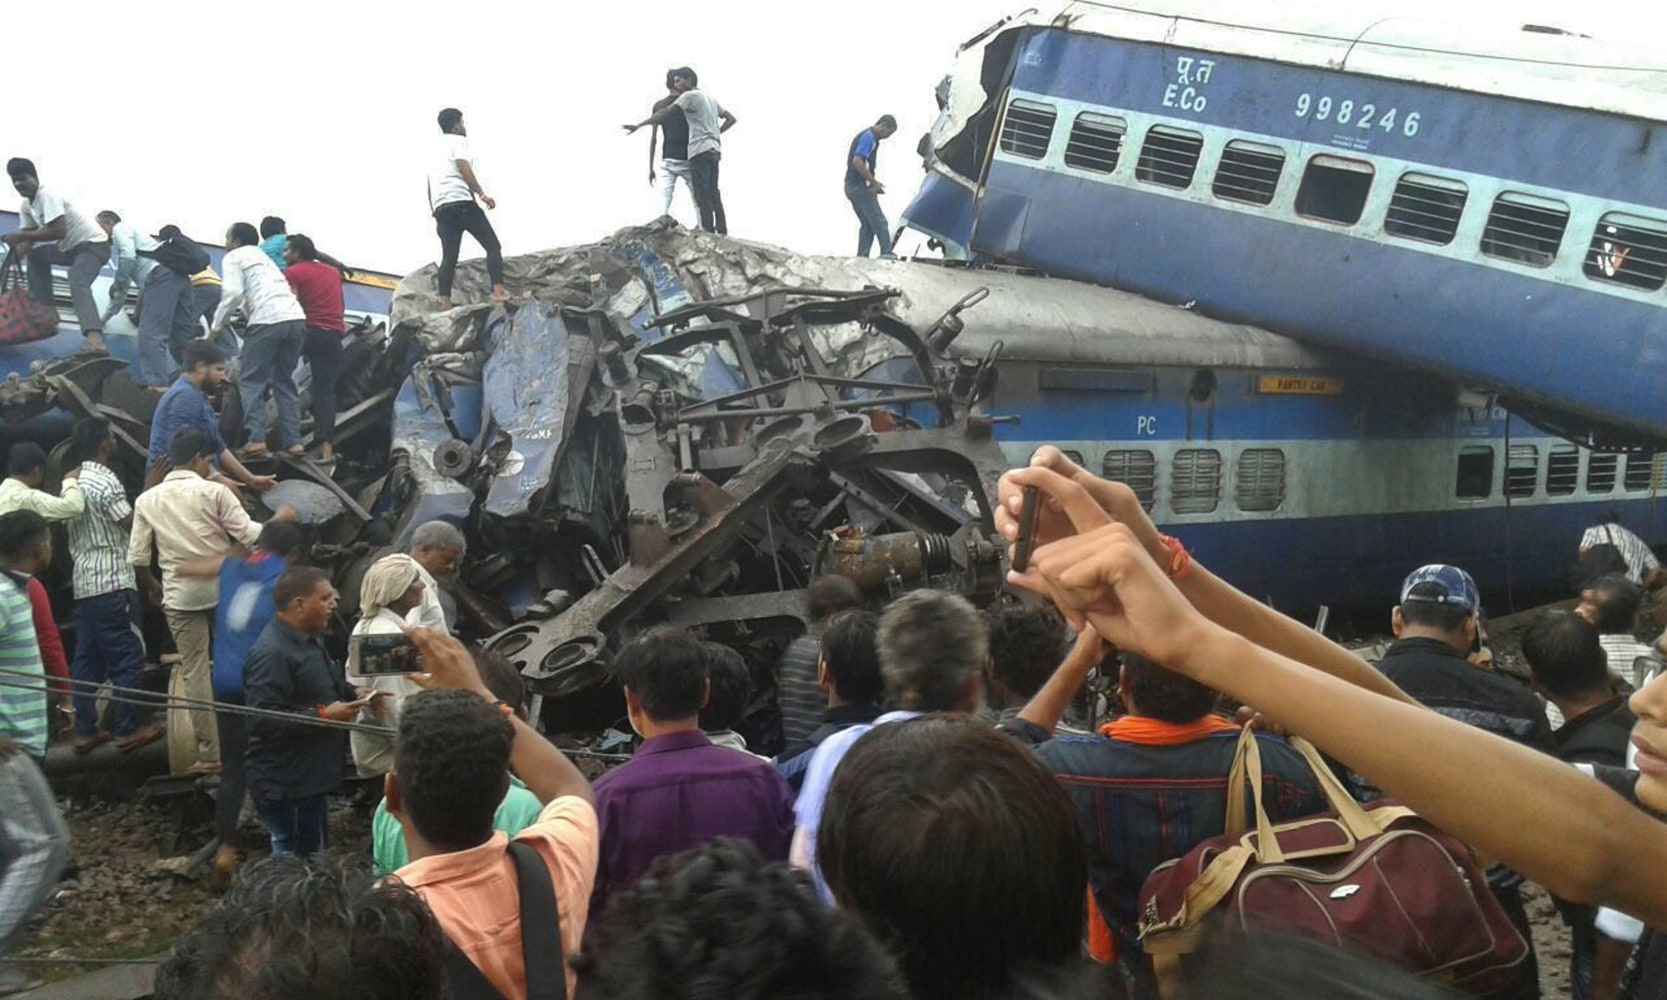 12 killed, many injured in Uttakal Express train accident in UP